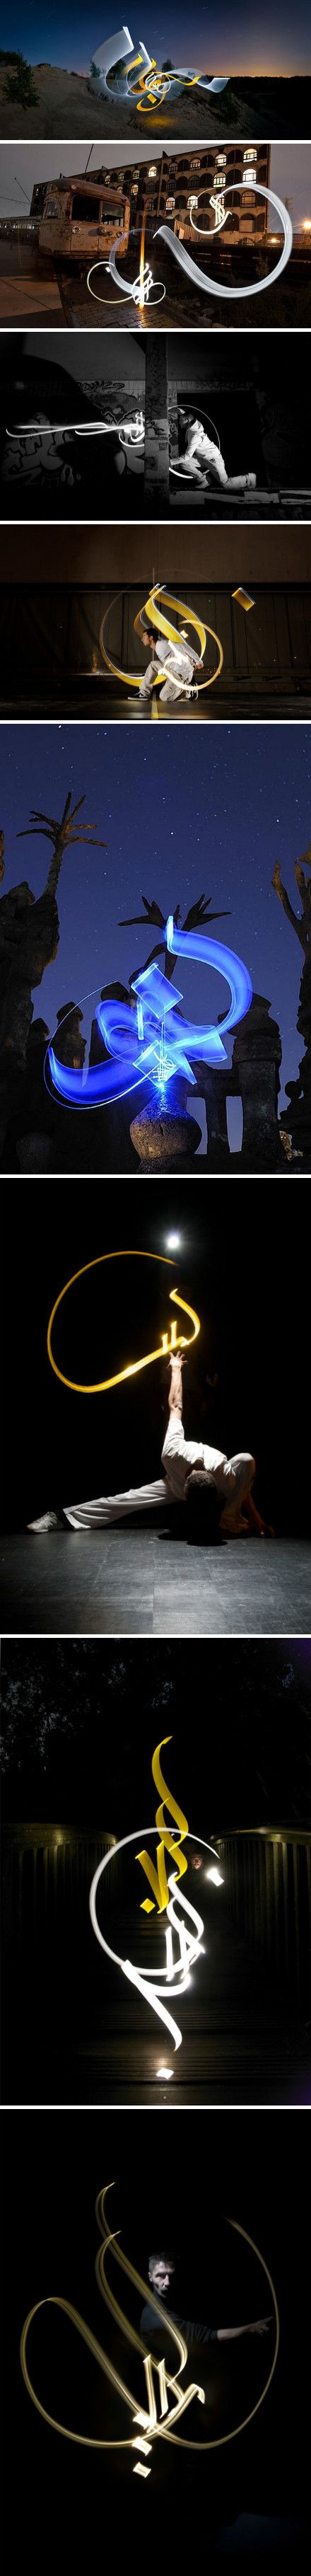 WOW .. Arabic Calligraphy Light Photography :)